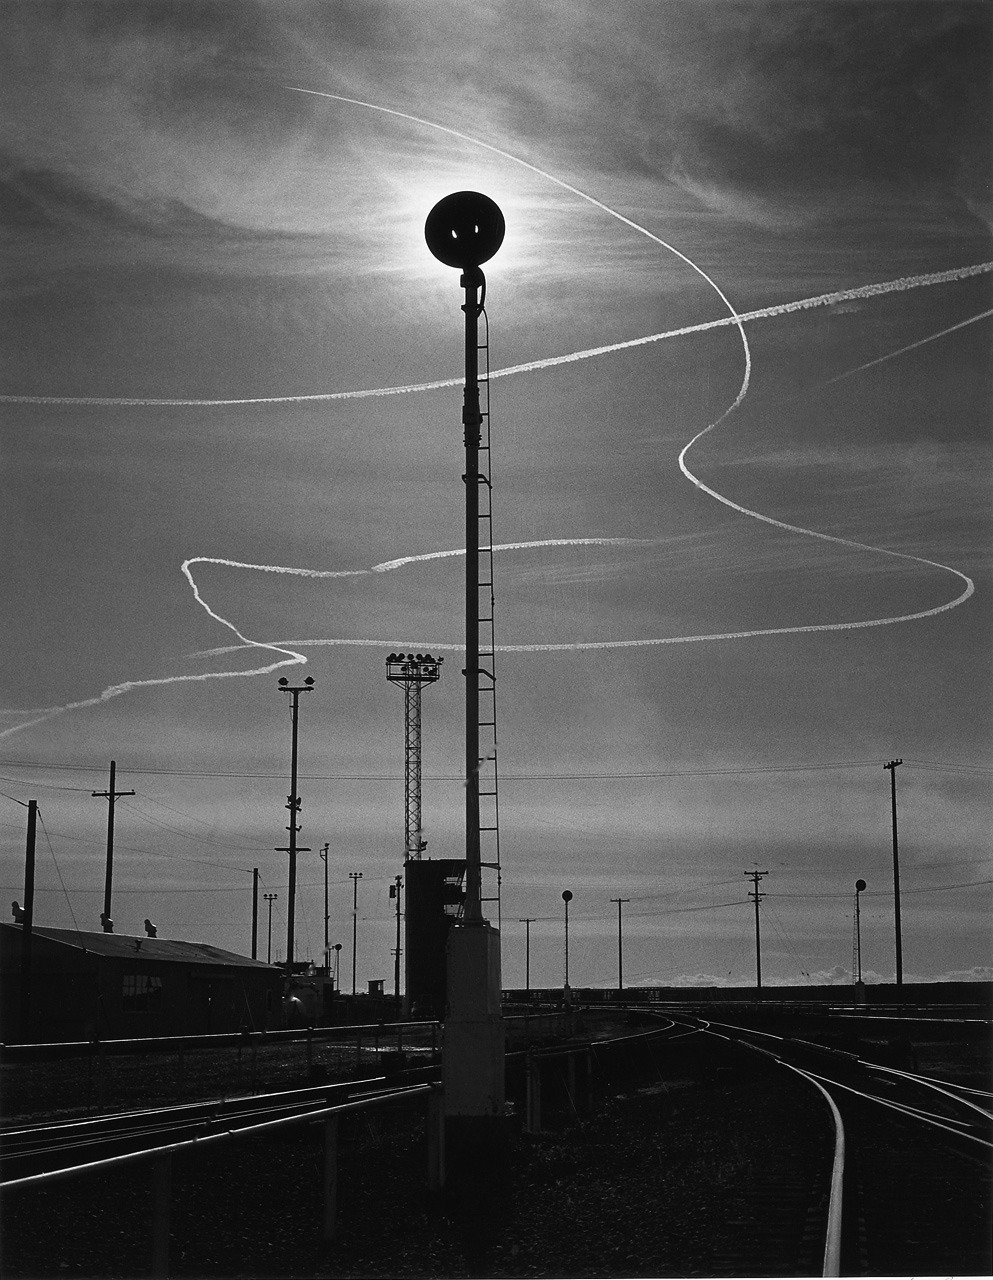 Ansel Adams, Rails and Jet Trails, Roseville, California, 1953. From melisaki.